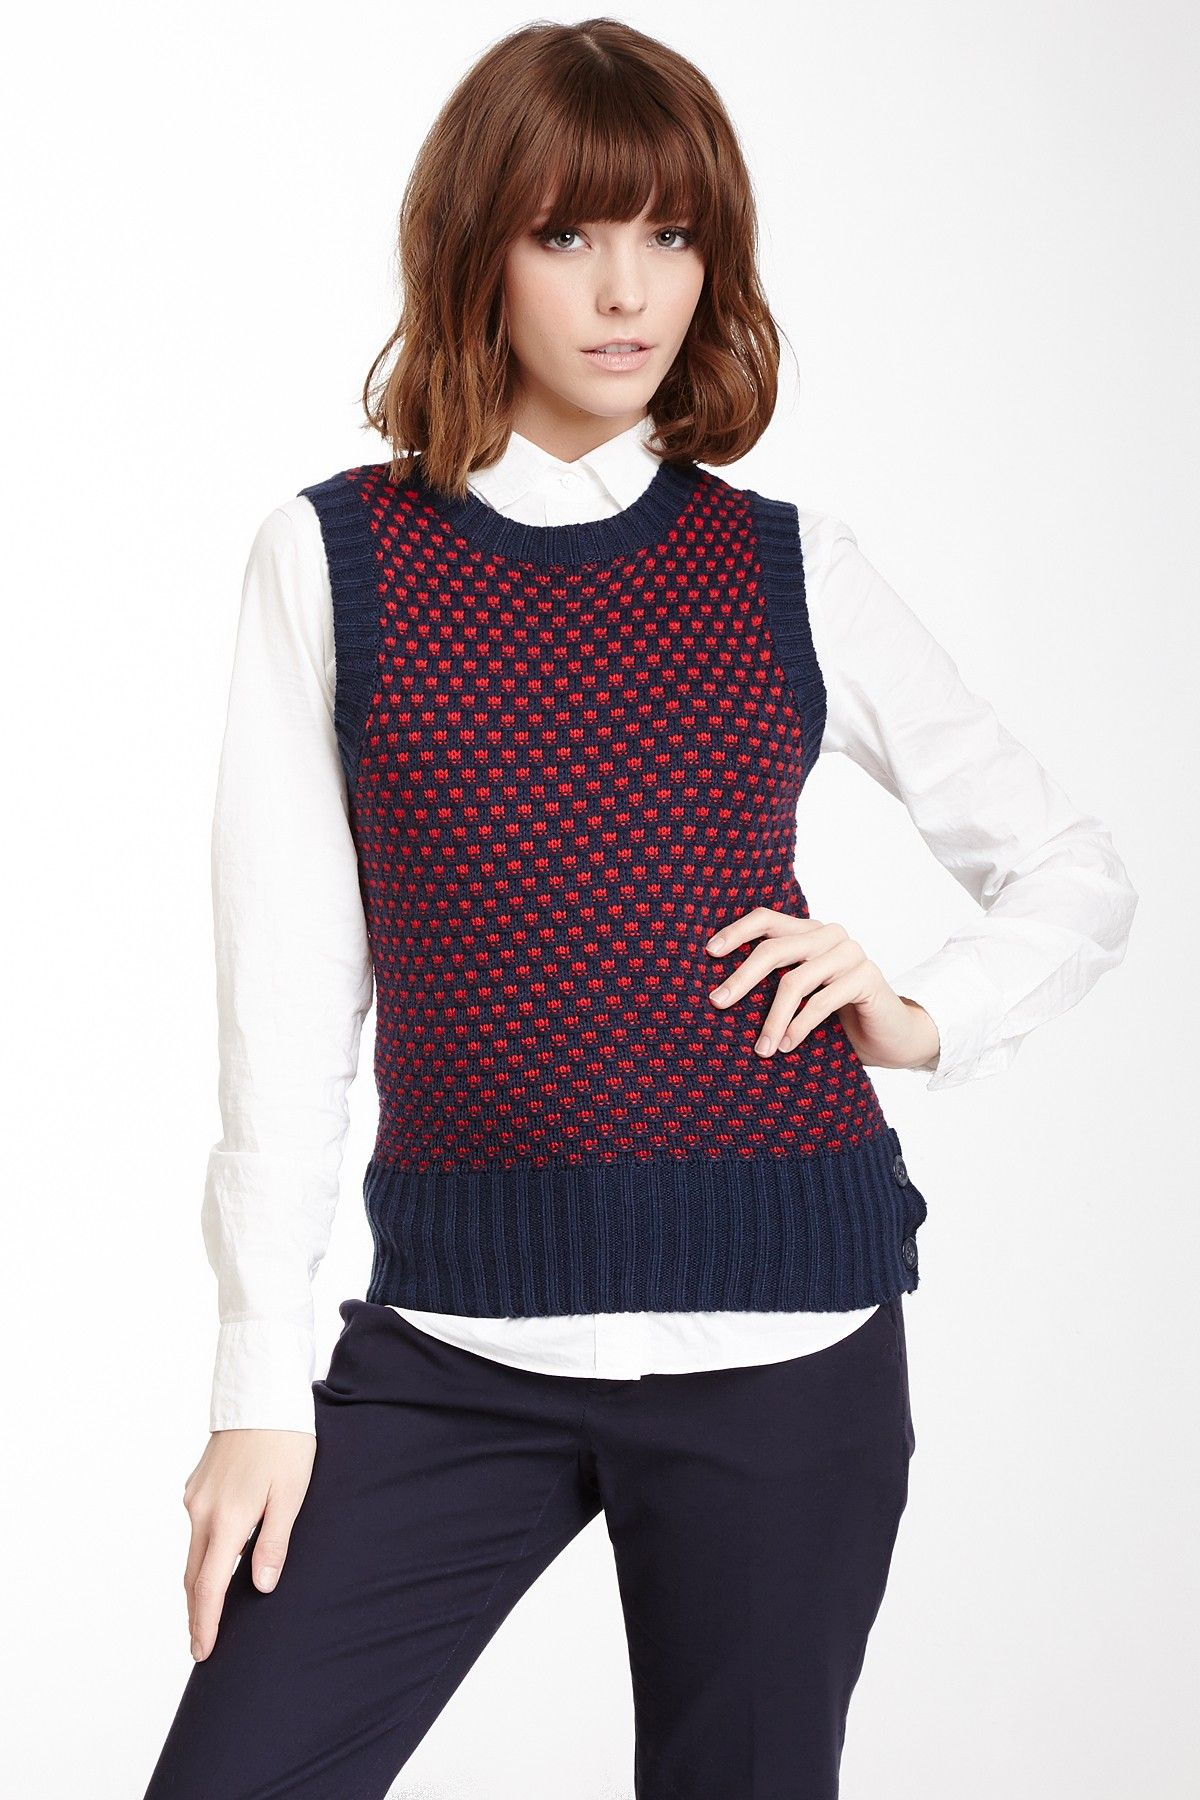 Tulle Crew Neck Patterned Sweater Vest | Clothing and Style ...